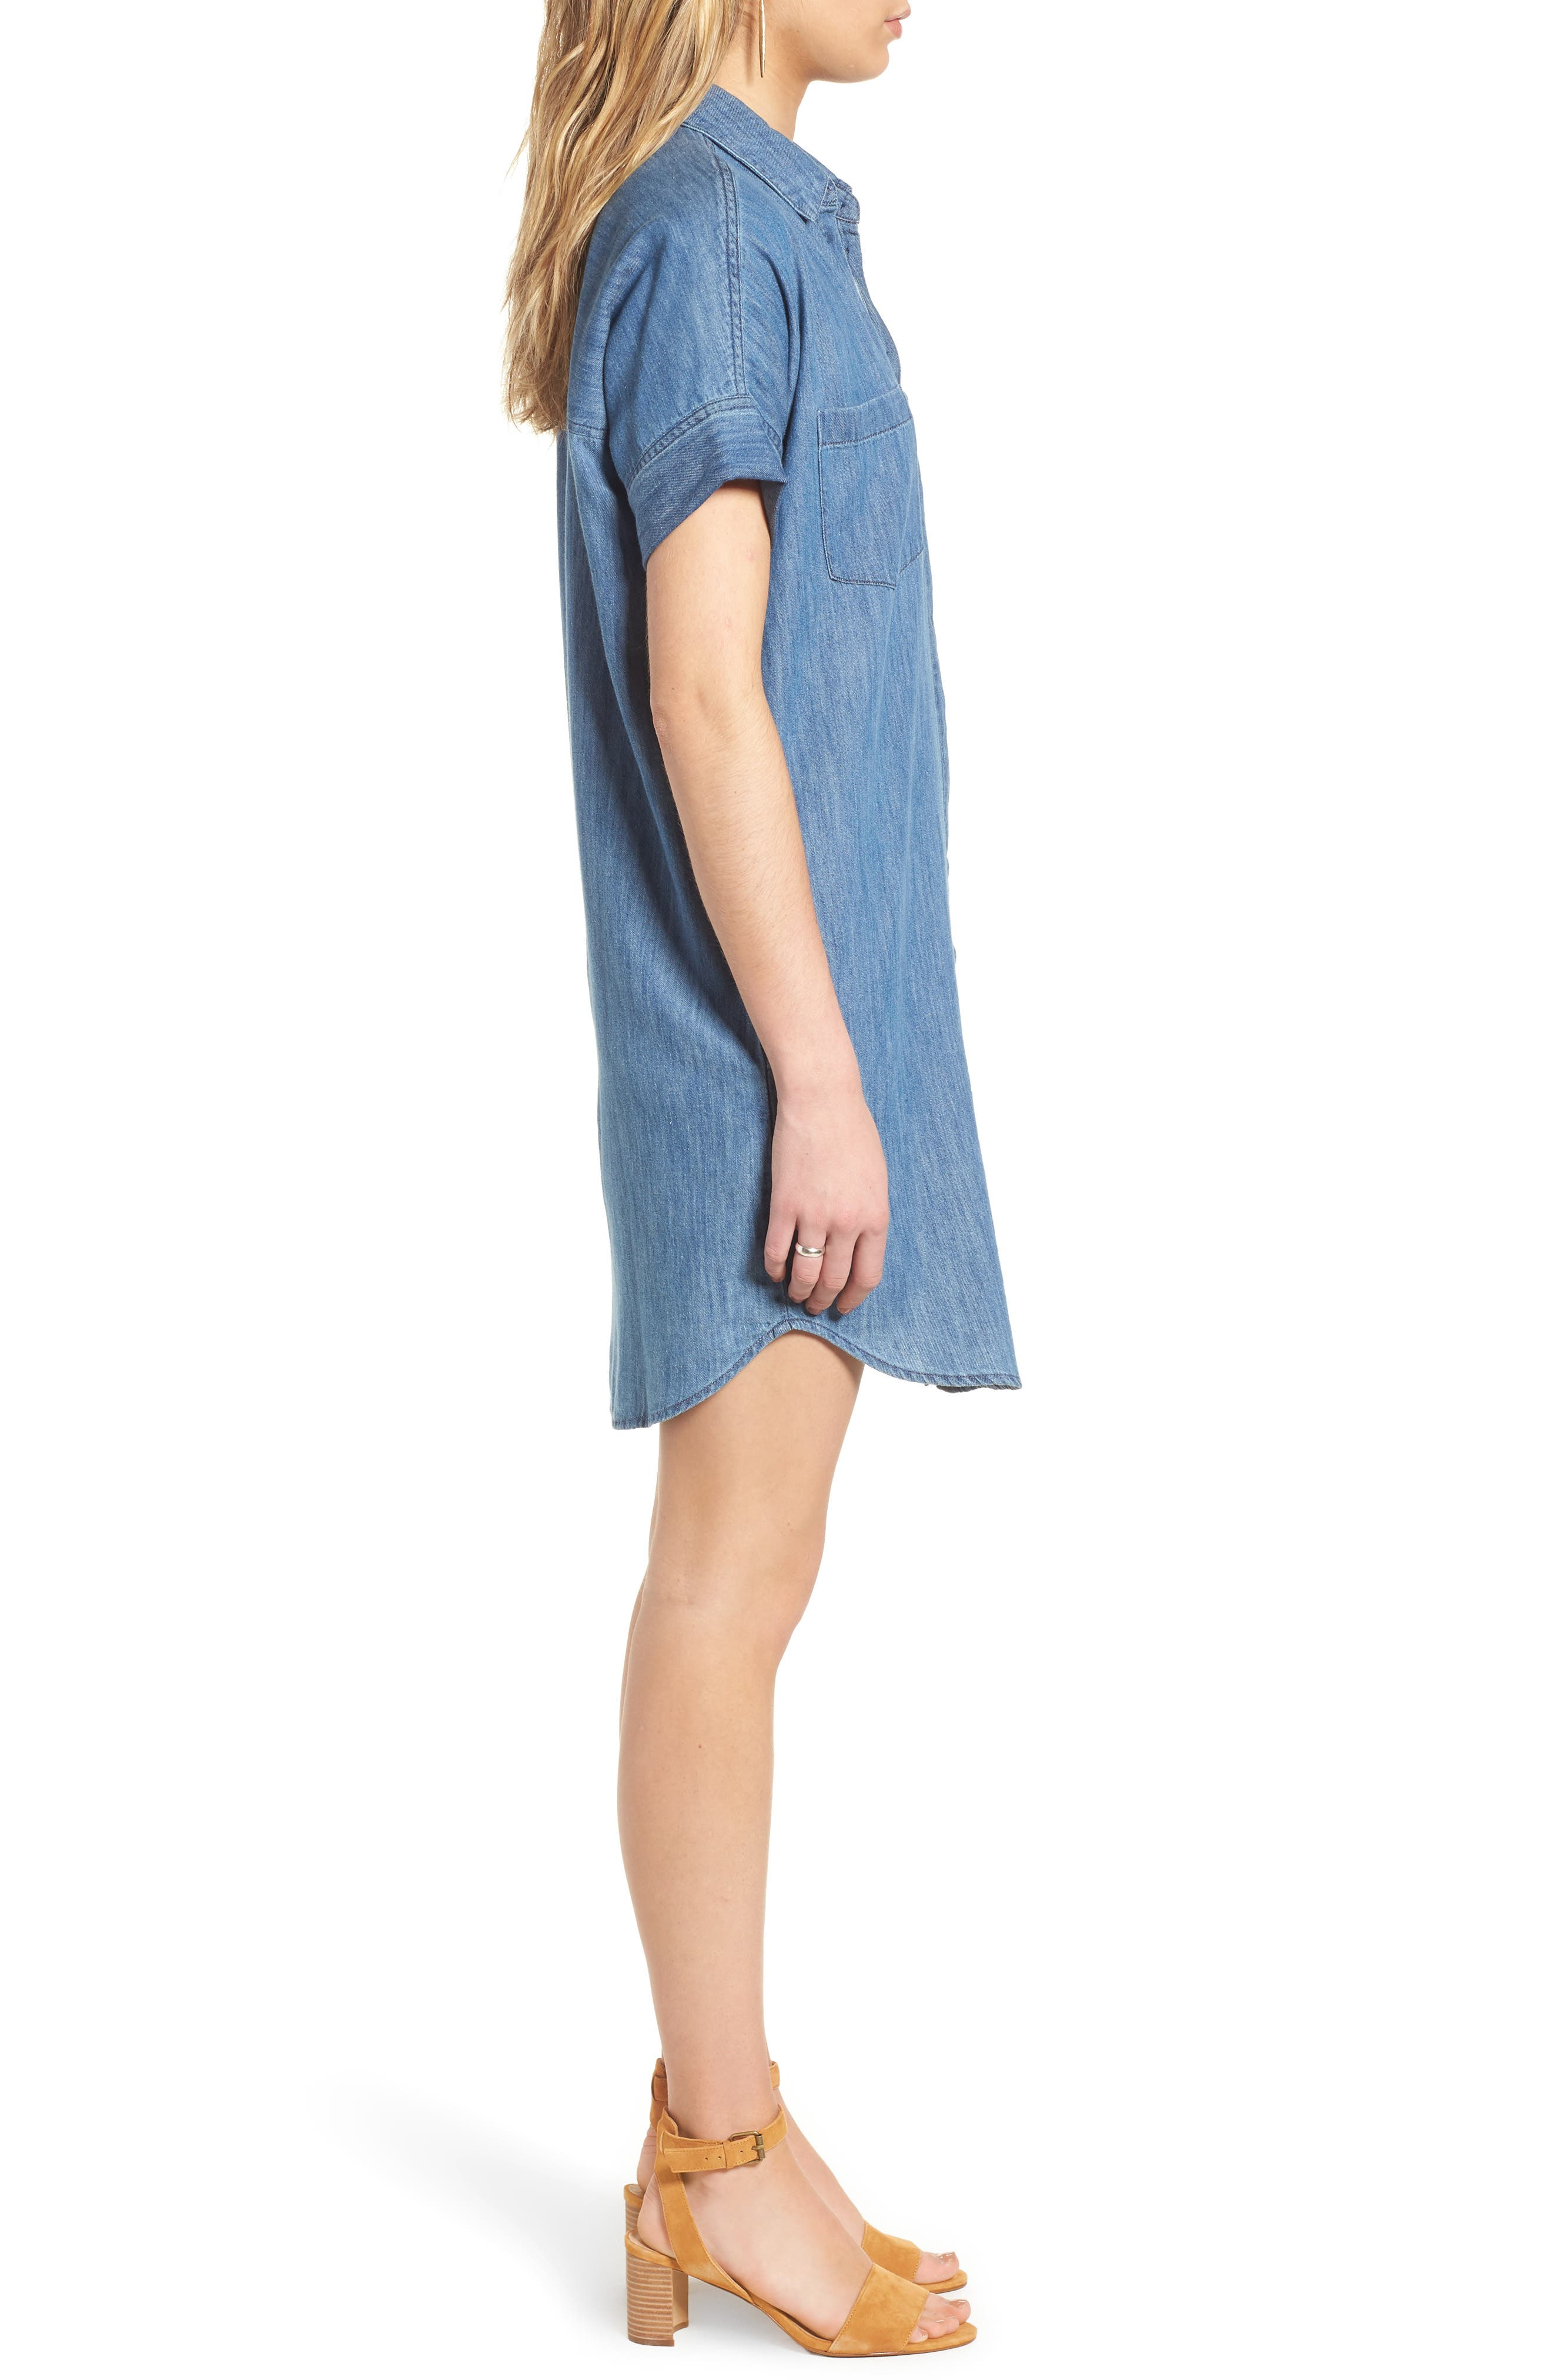 MADEWELL, Courier Denim Shirtdress, Alternate thumbnail 3, color, 400